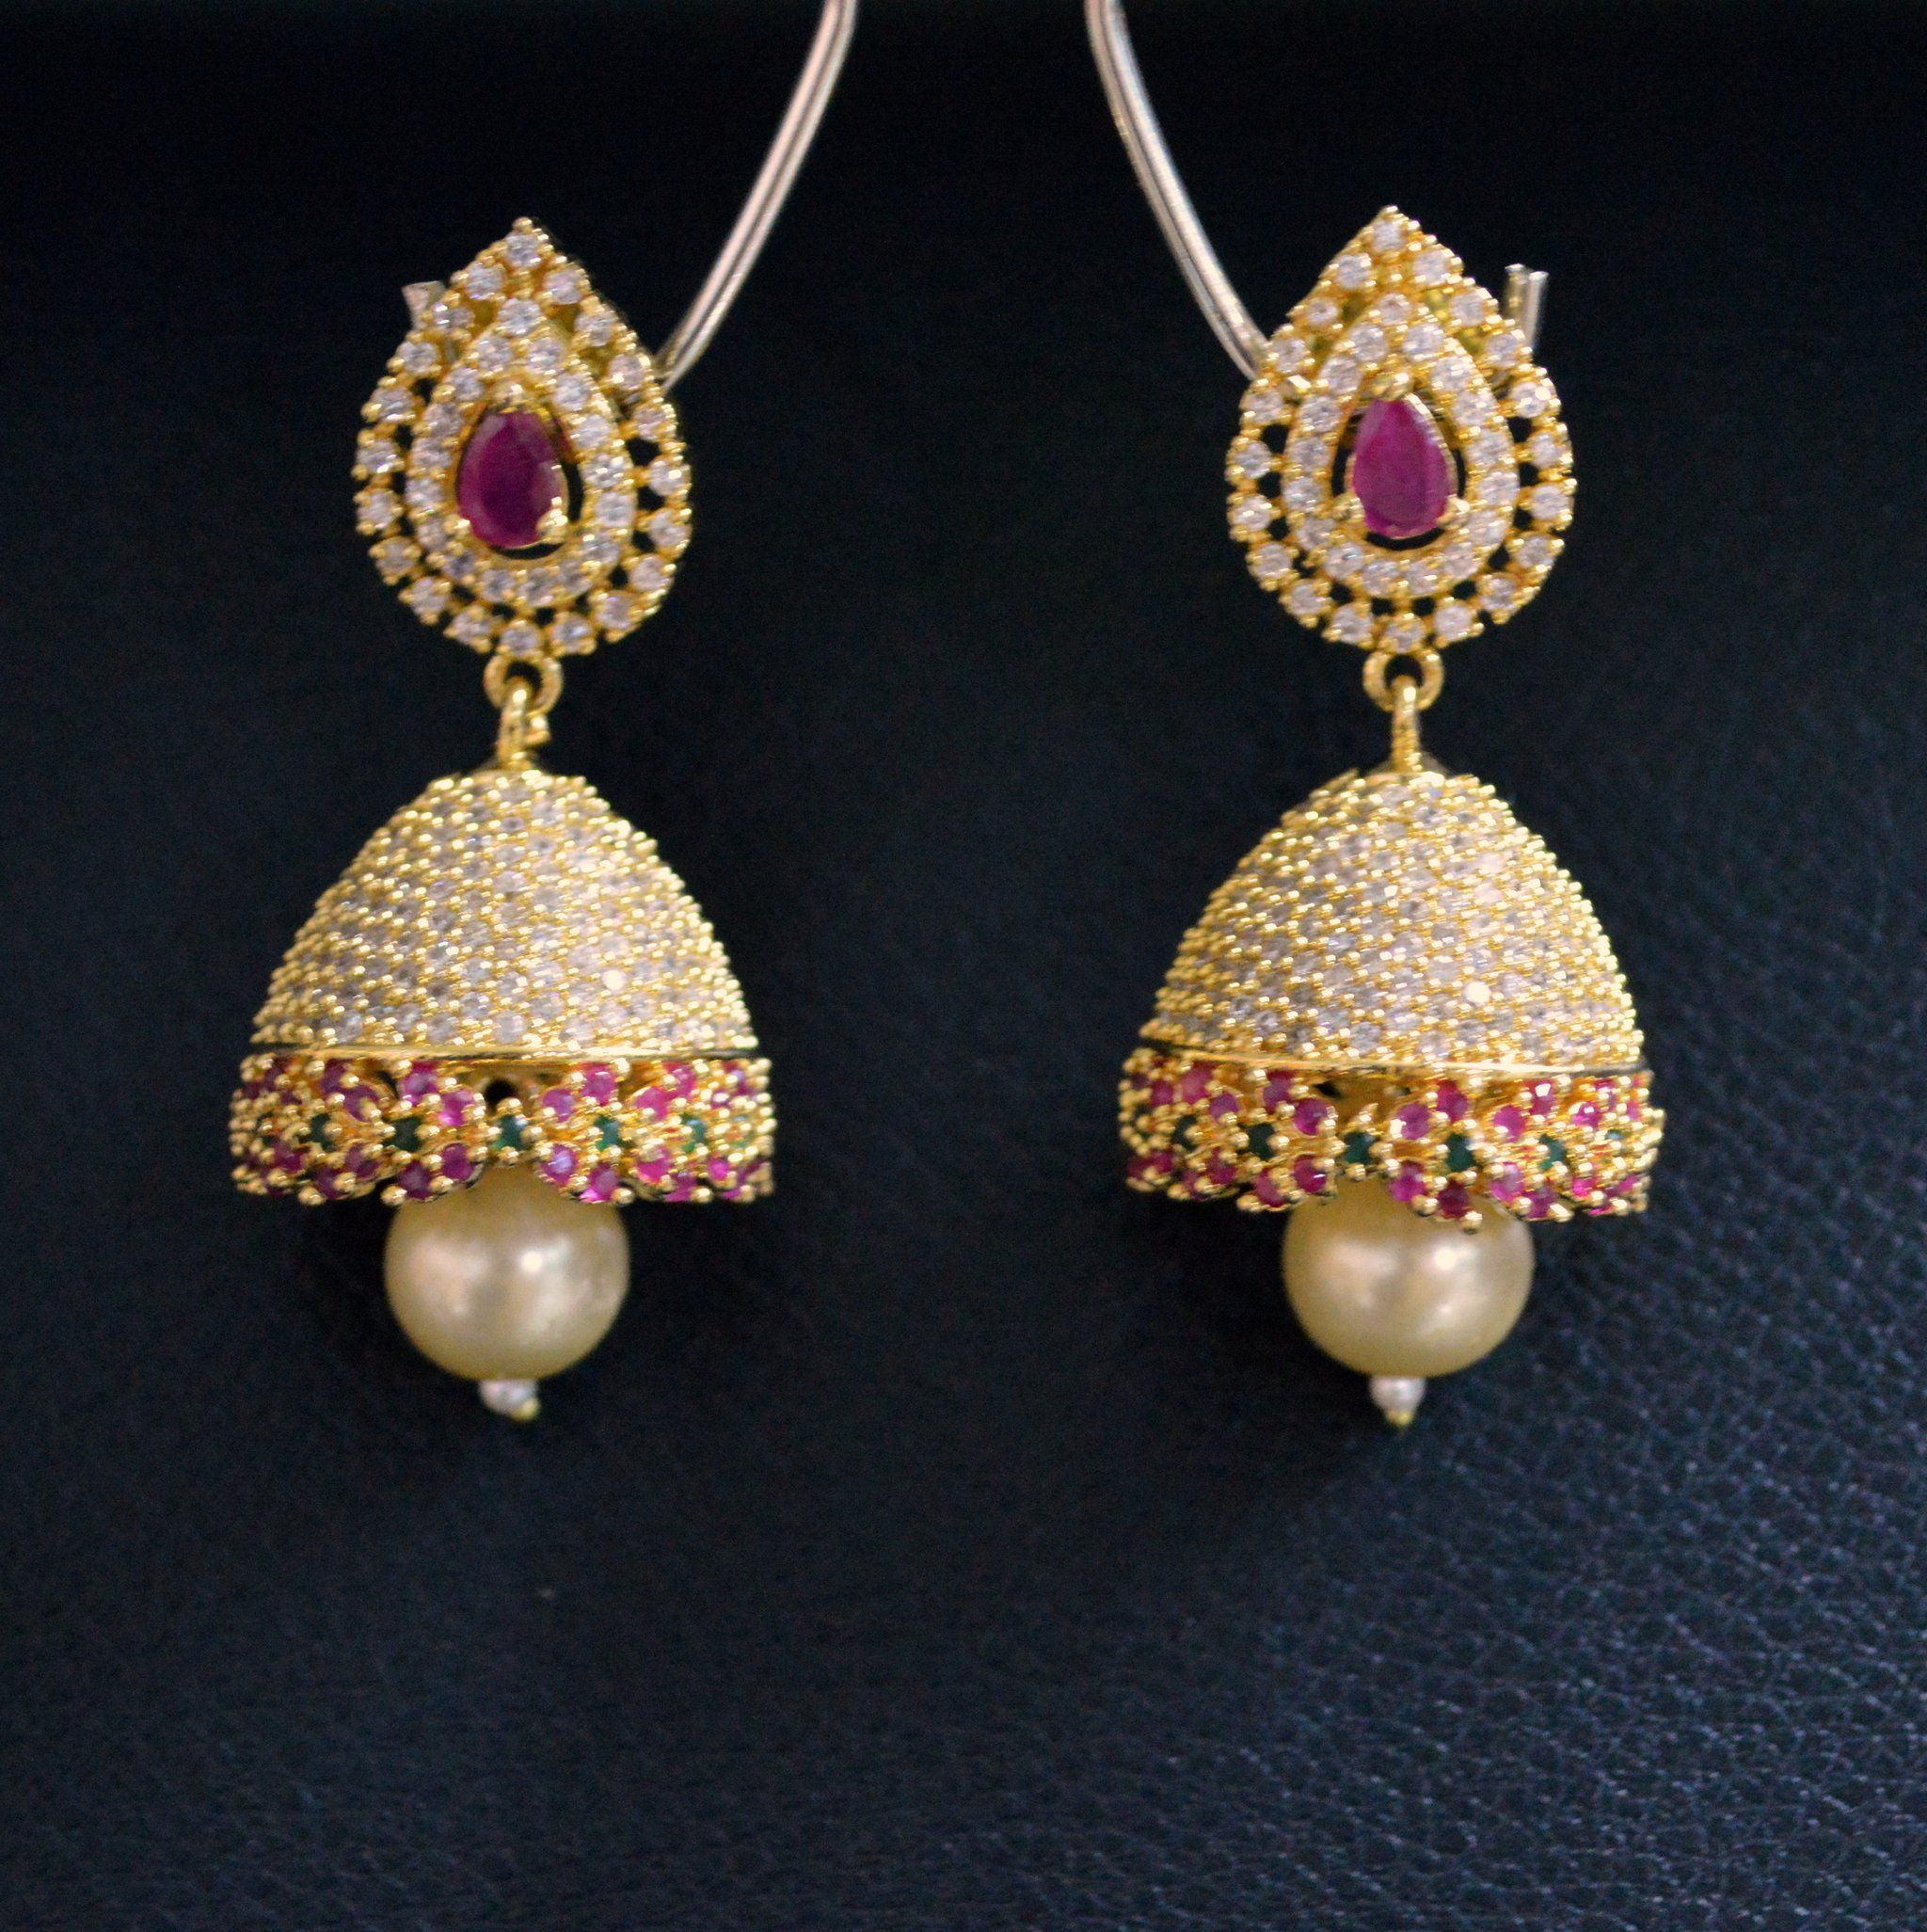 american diamond earrings nirmal zaveri tbz